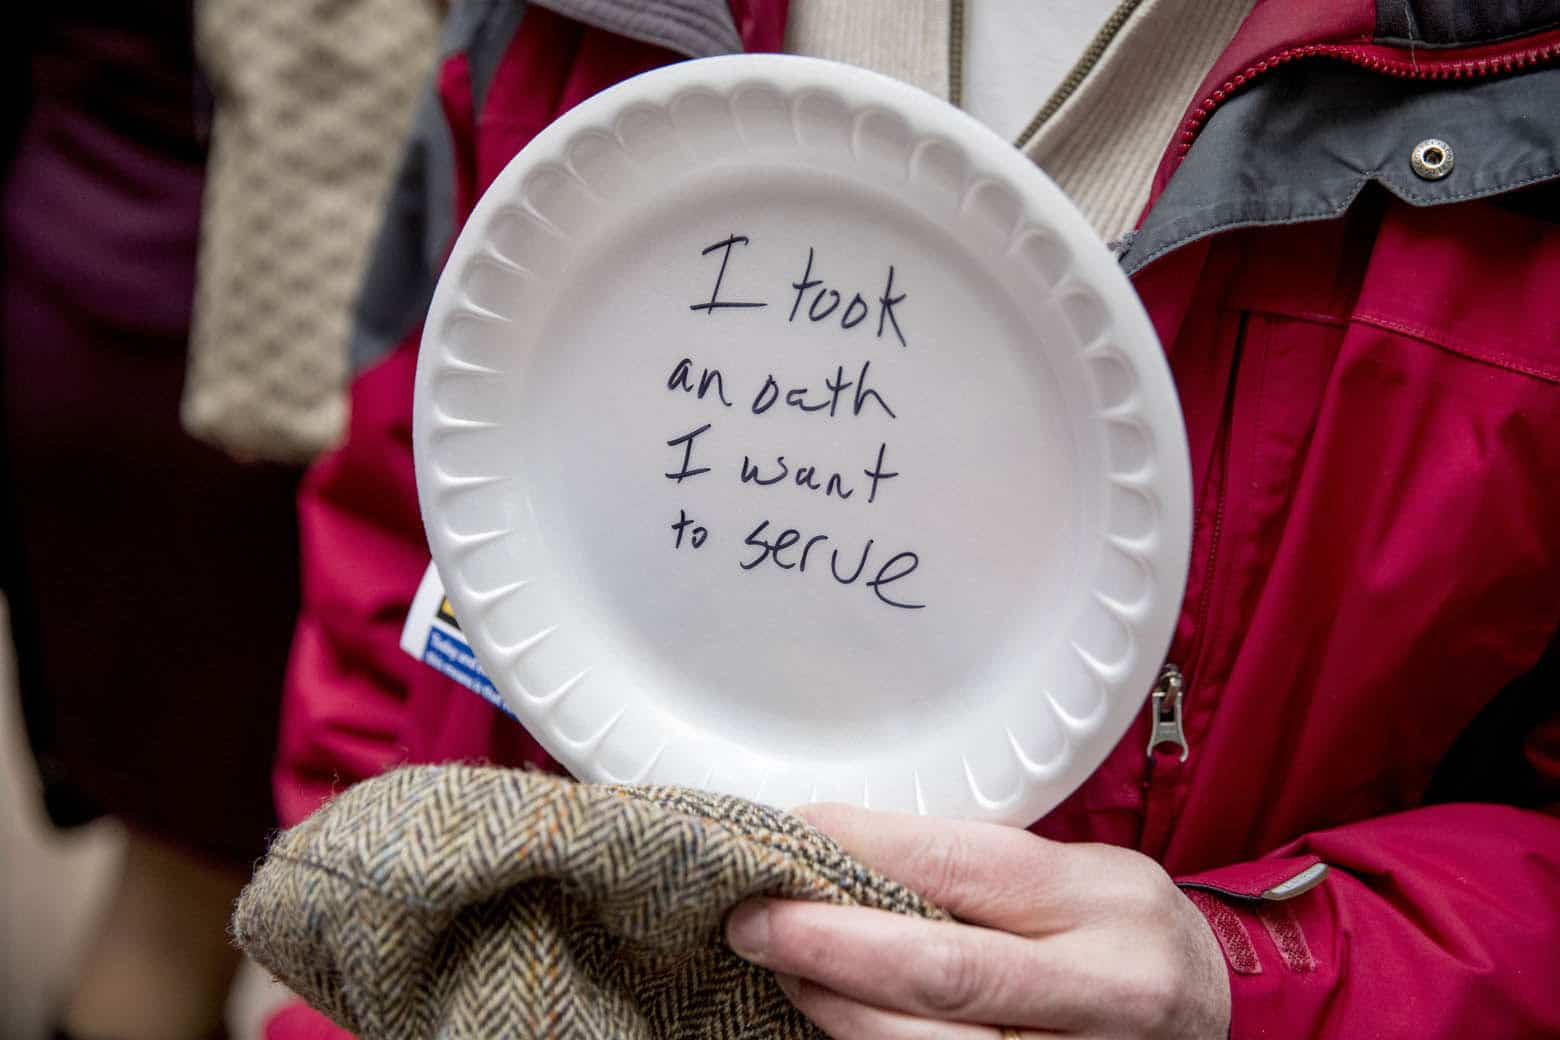 """A furloughed government worker affected by the shutdown holds a sign that reads """"I took an oath I want to serve"""" during a silent protest against the ongoing partial government shutdown on Capitol Hill in Washington, Wednesday, Jan. 23, 2019. Protesters held up disposable plates instead of posters to avoid being arrested. (AP Photo/Andrew Harnik)"""